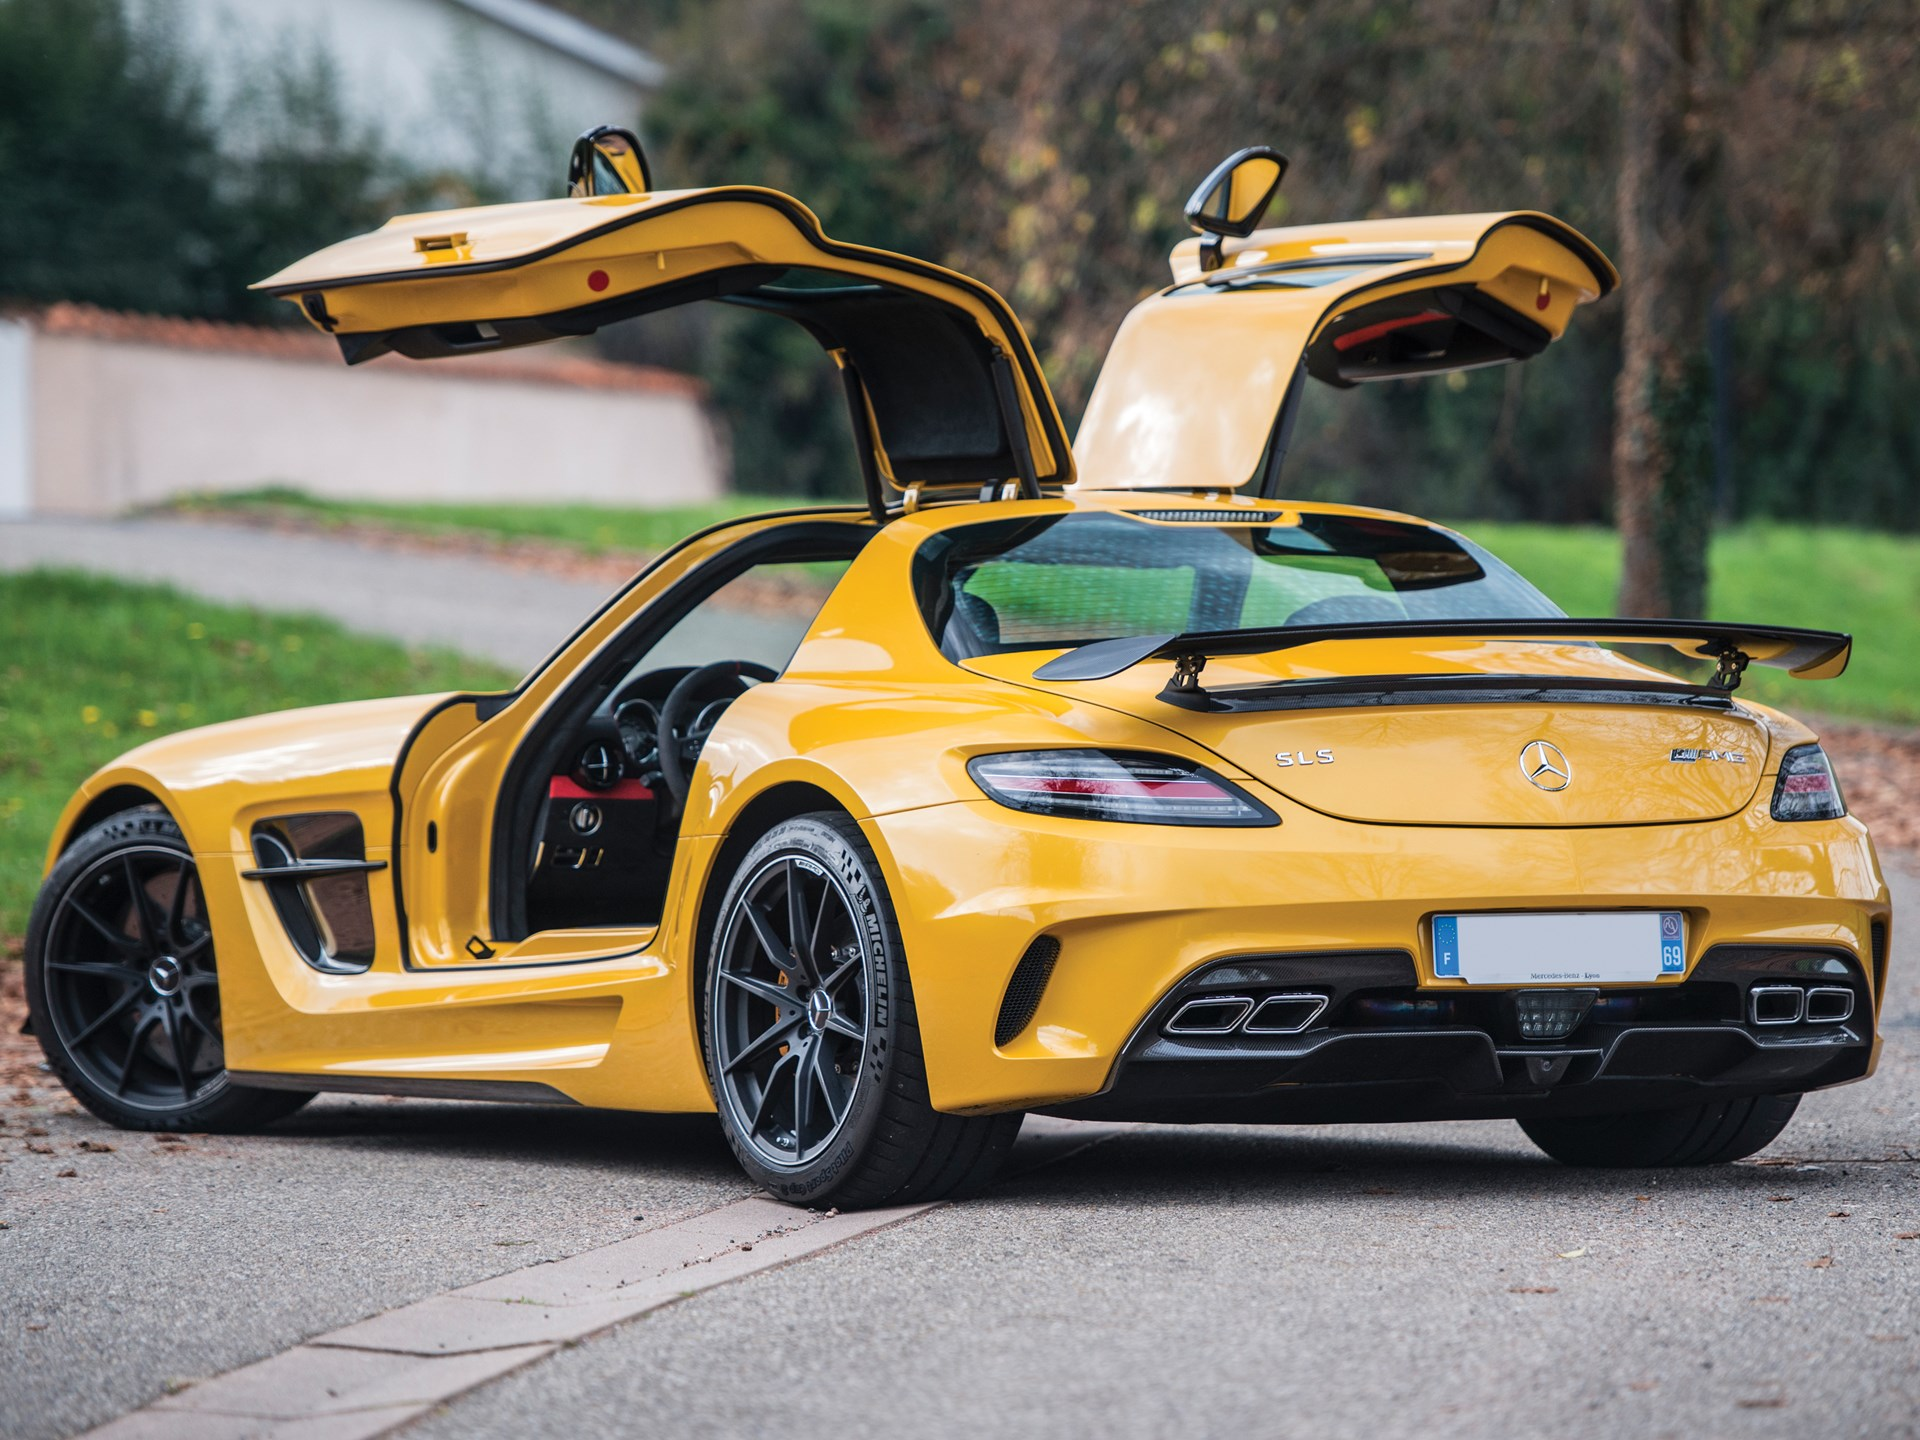 Sls Black Series >> Rm Sotheby S 2014 Mercedes Benz Sls Amg Black Series Paris 2017